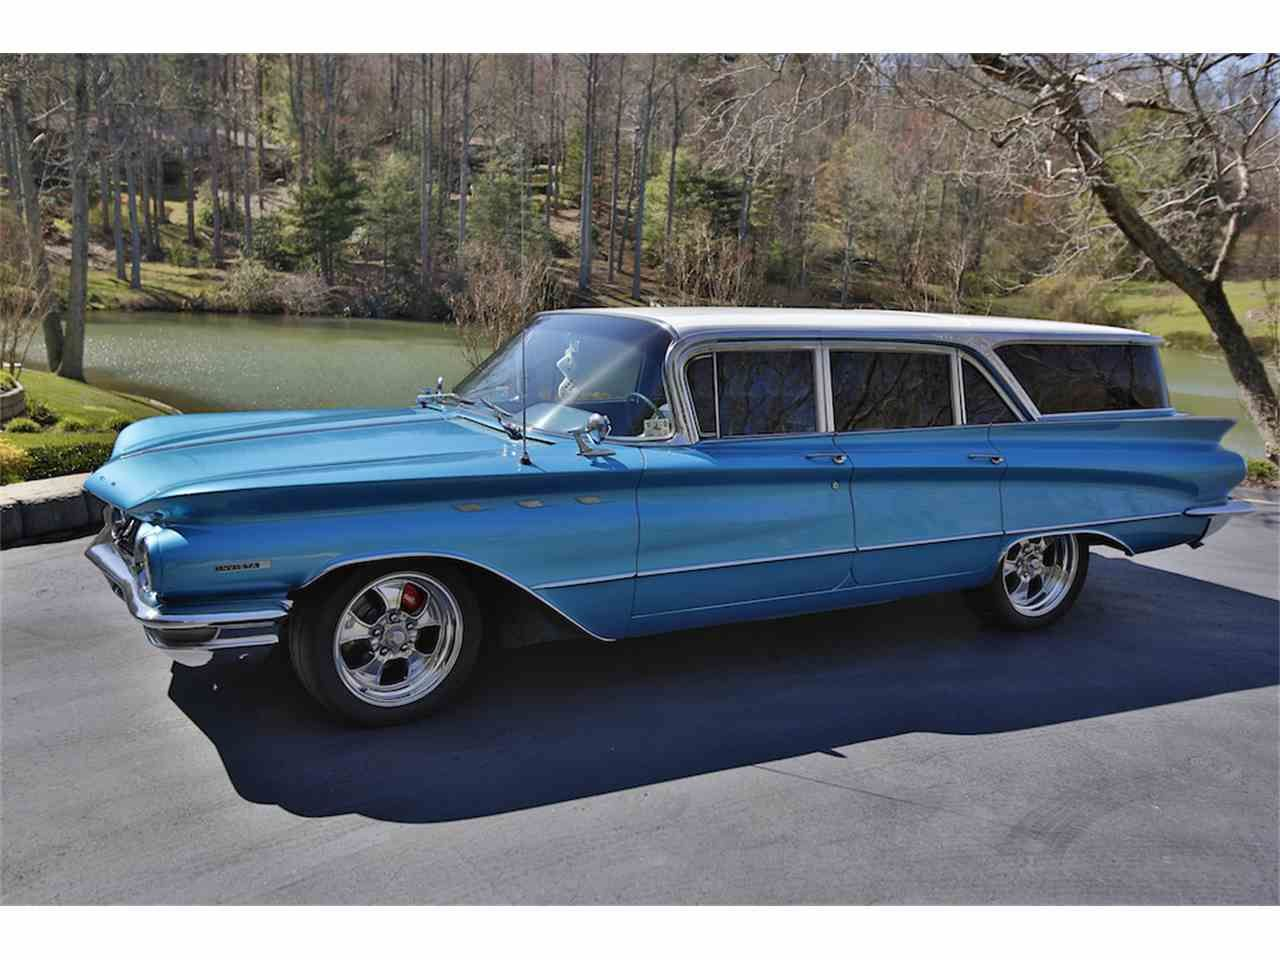 1960 buick invicta station wagon for sale cc classic station wagons. Black Bedroom Furniture Sets. Home Design Ideas